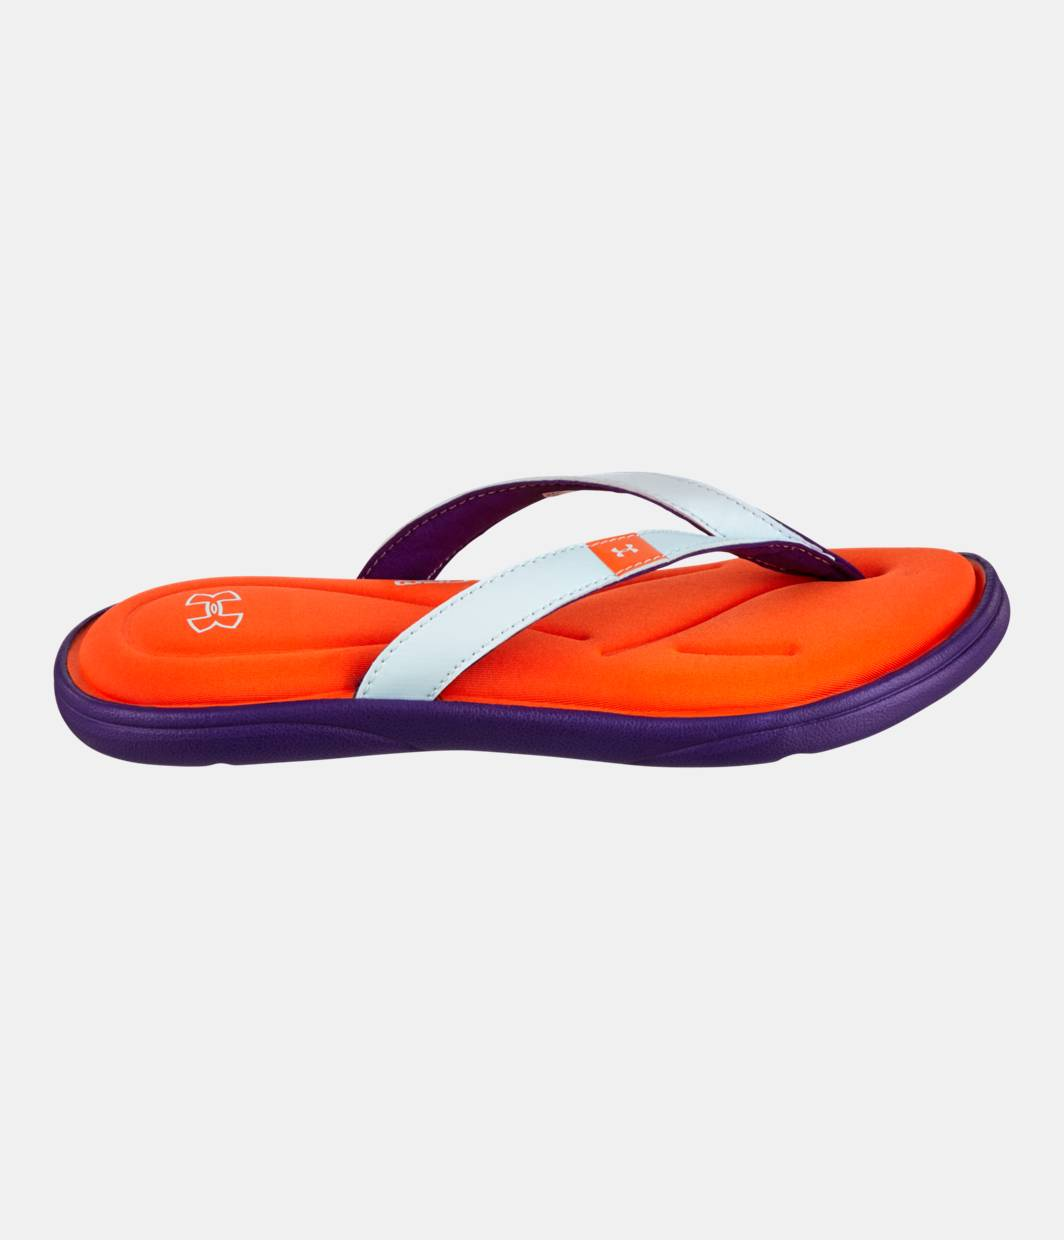 Shop women's slides, sport sandals, and flip flops from Under Armour. Perfect for after a long workout or big game. FREE SHIPPING available in the CA.